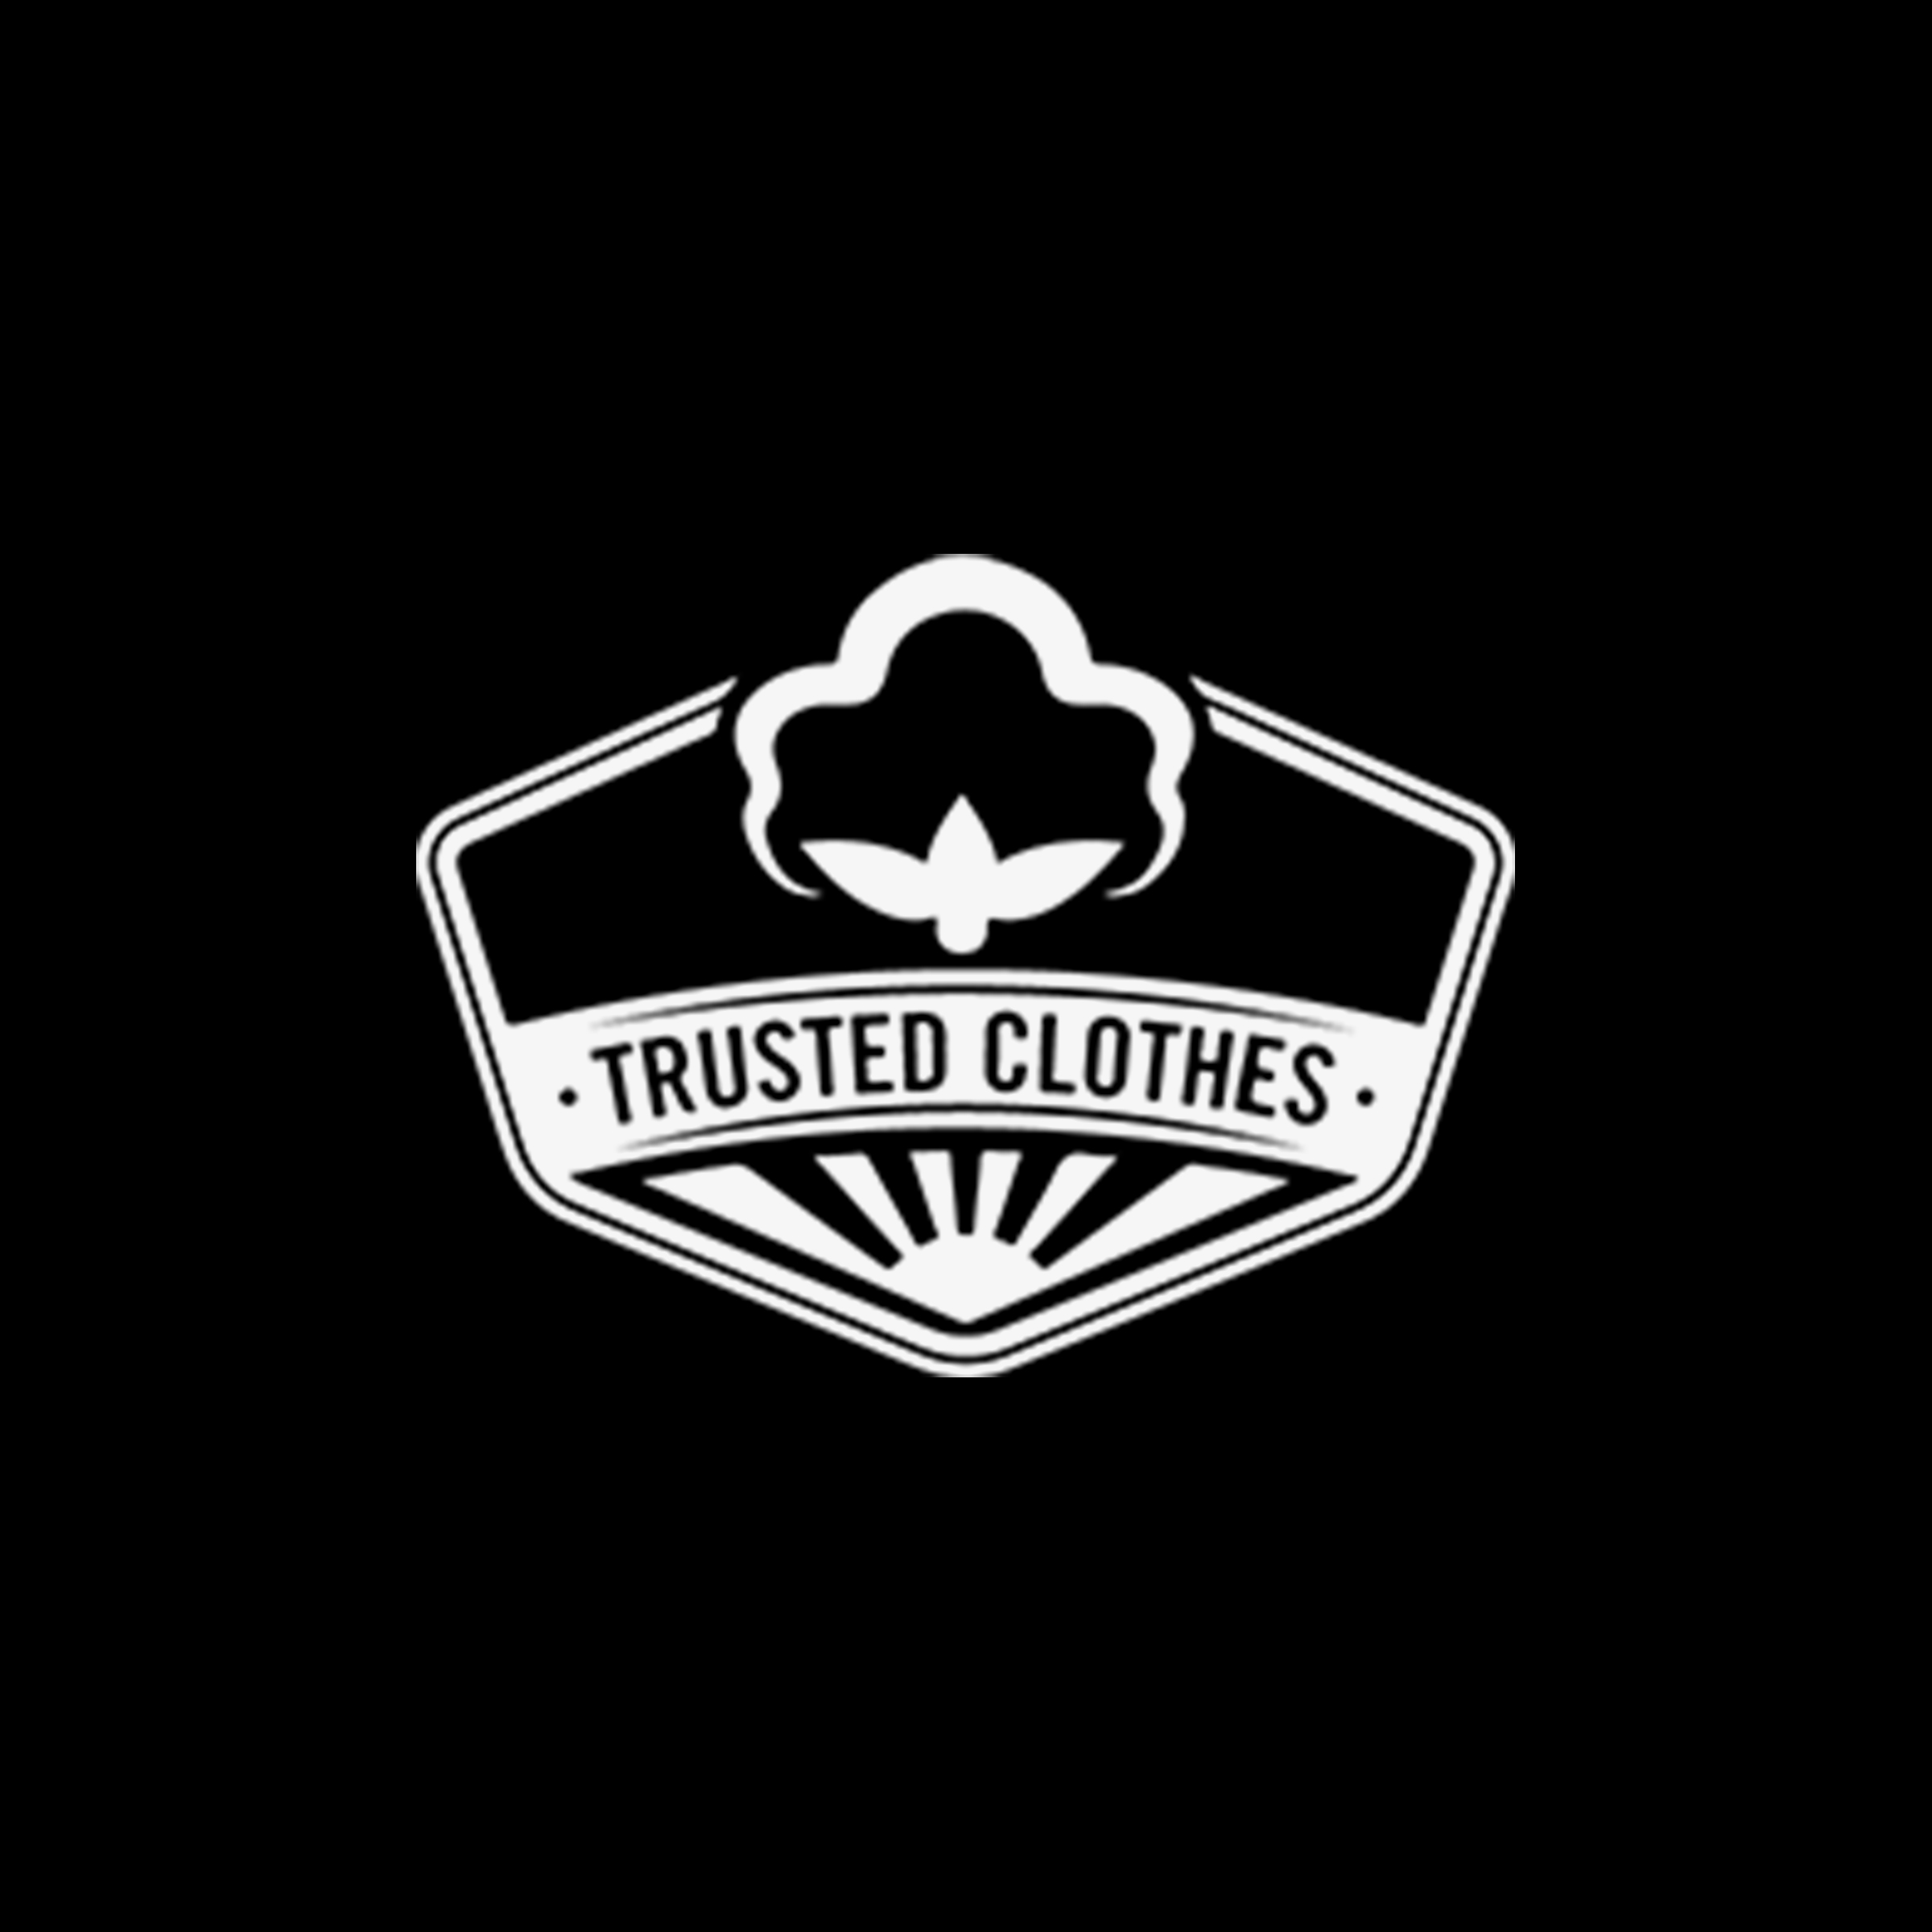 T R U S T E D C L O T H E S  Trusted Clothes is an organization linking people, organizations and brands that are ethical, environmentally friendly, and health conscious. We are a group of volunteers dedicated to promoting Ethical, Sustainable, and Healthy fashion.